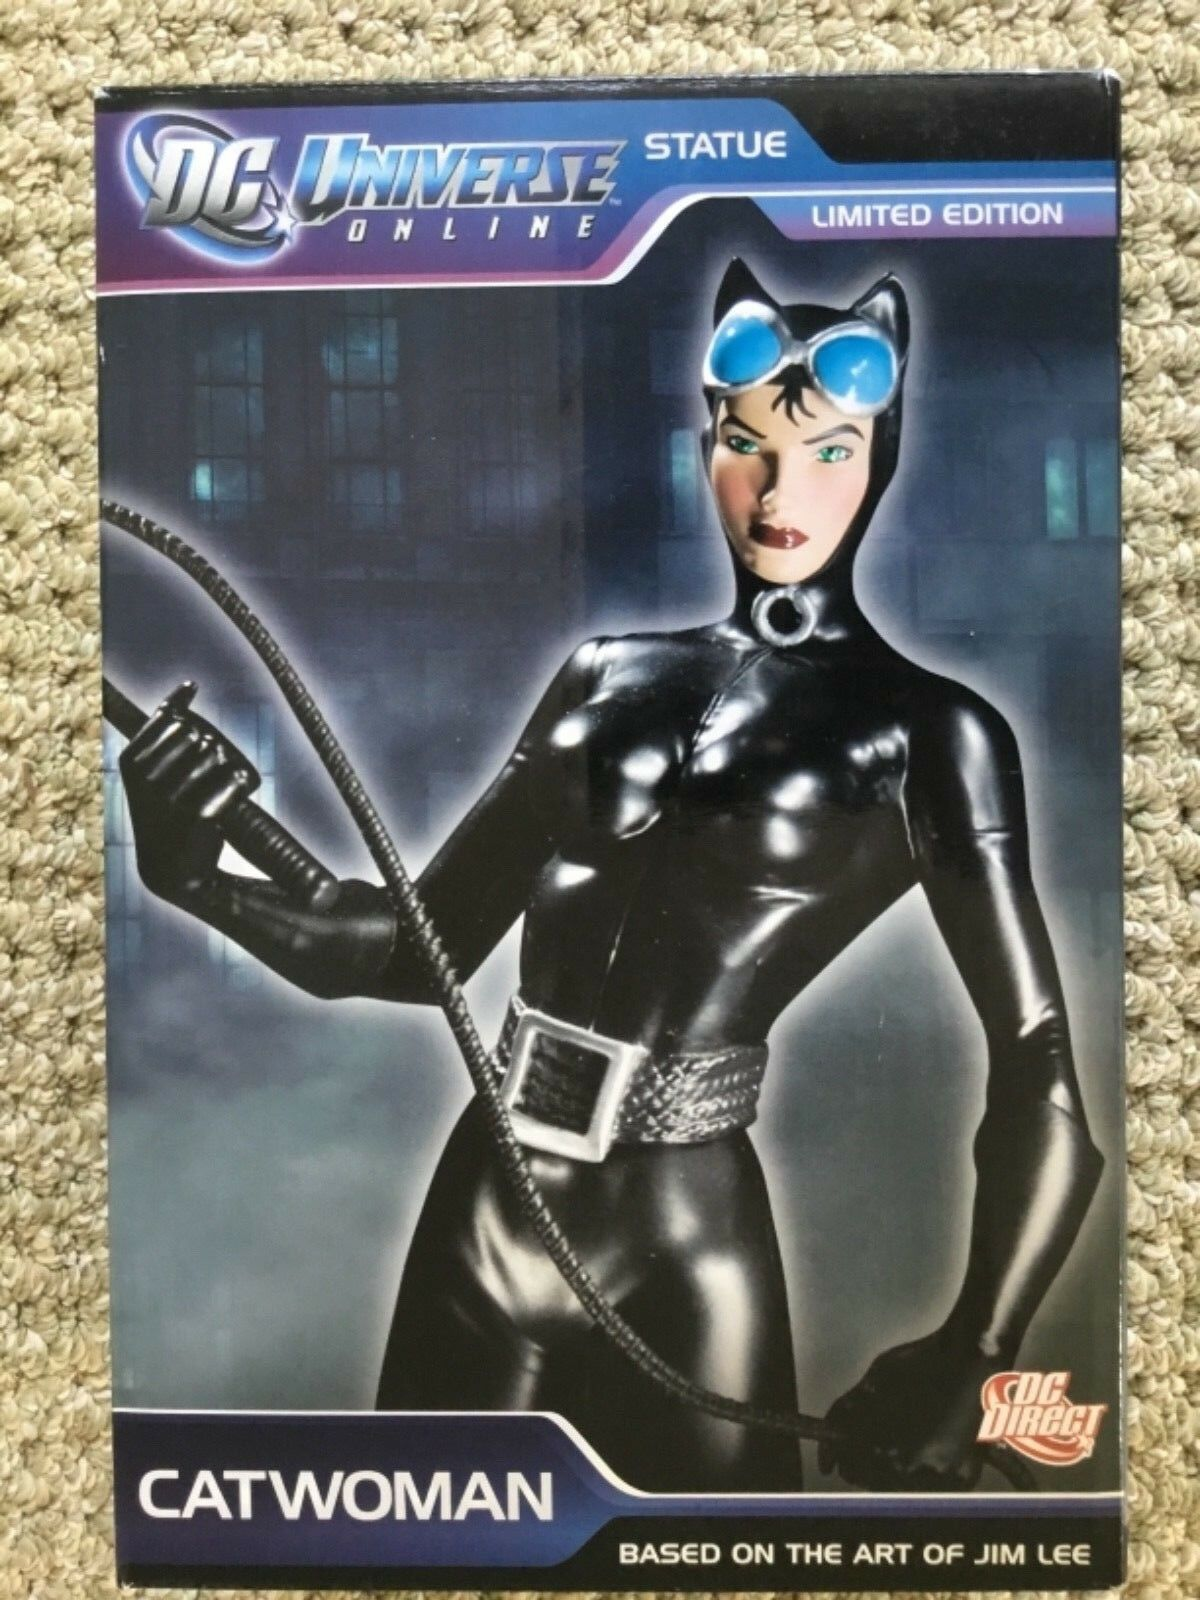 DC Universe Online CATWOMAN Statue LIMITED ED Based on Art of Jim Lee  5000